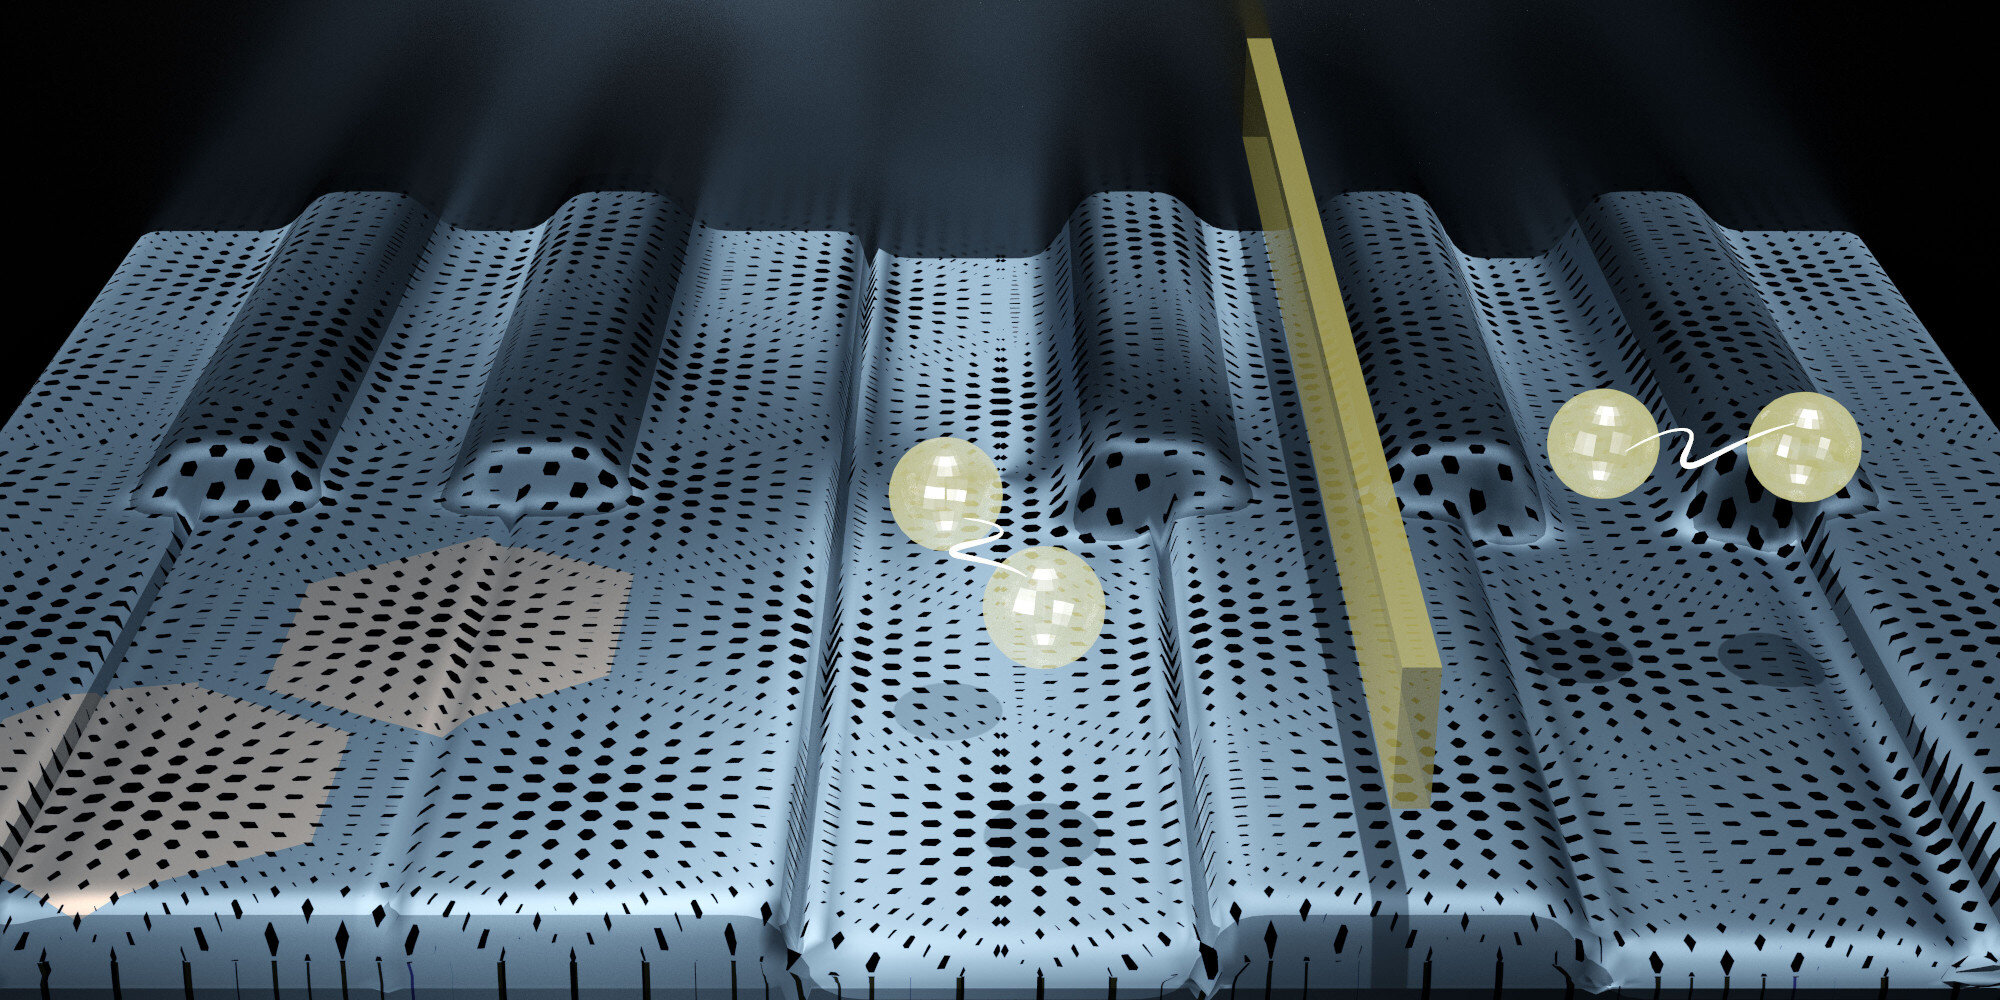 A material keyboard made of graphene